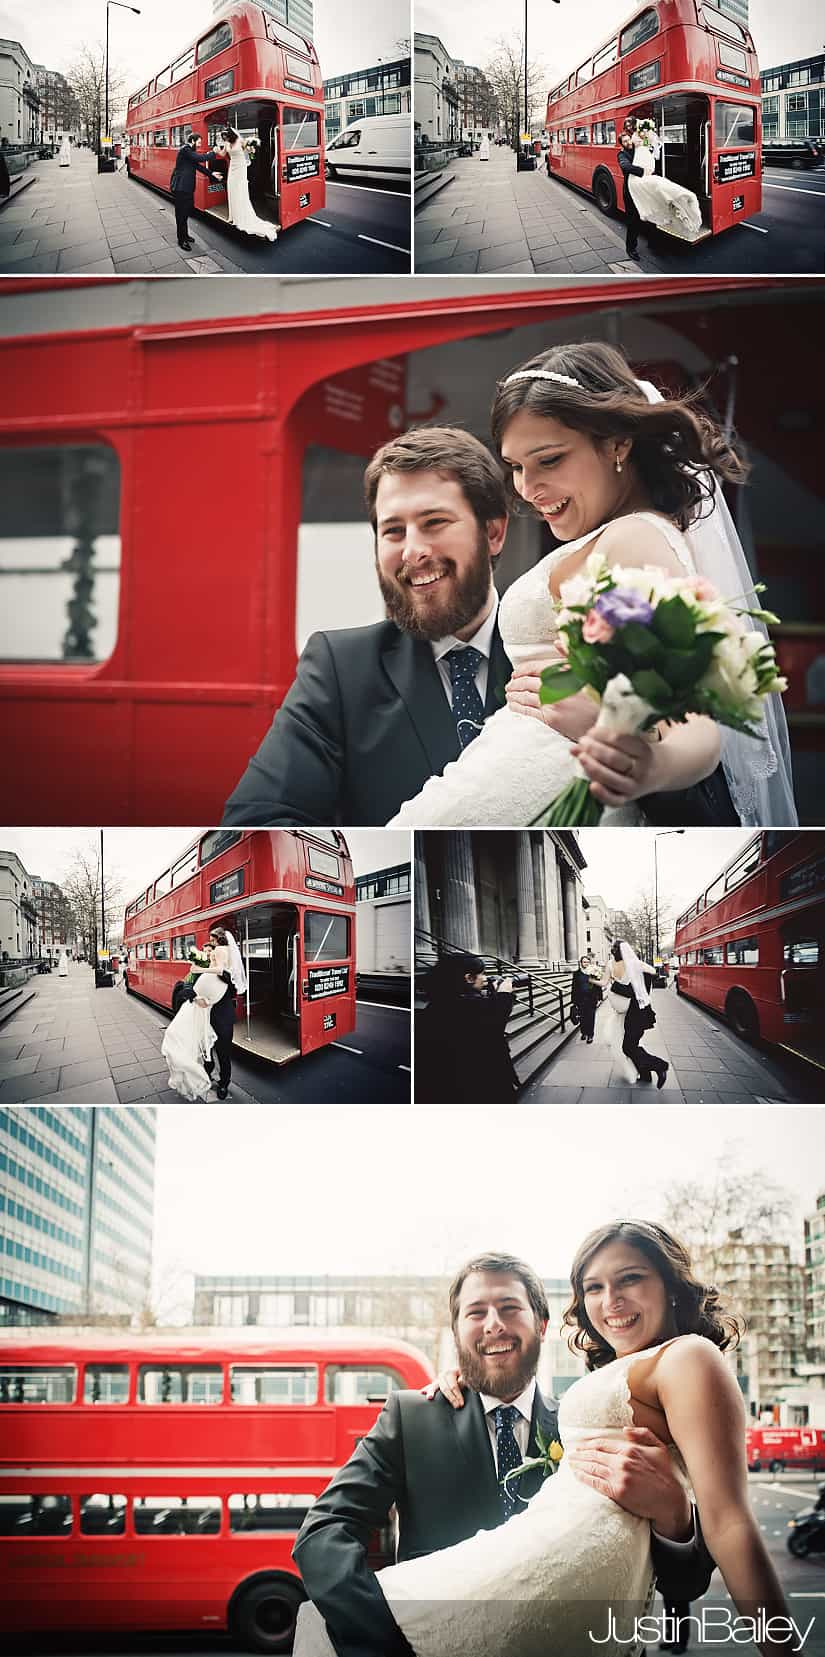 Wedding Photography Old Marylebone Town Hall MR 16